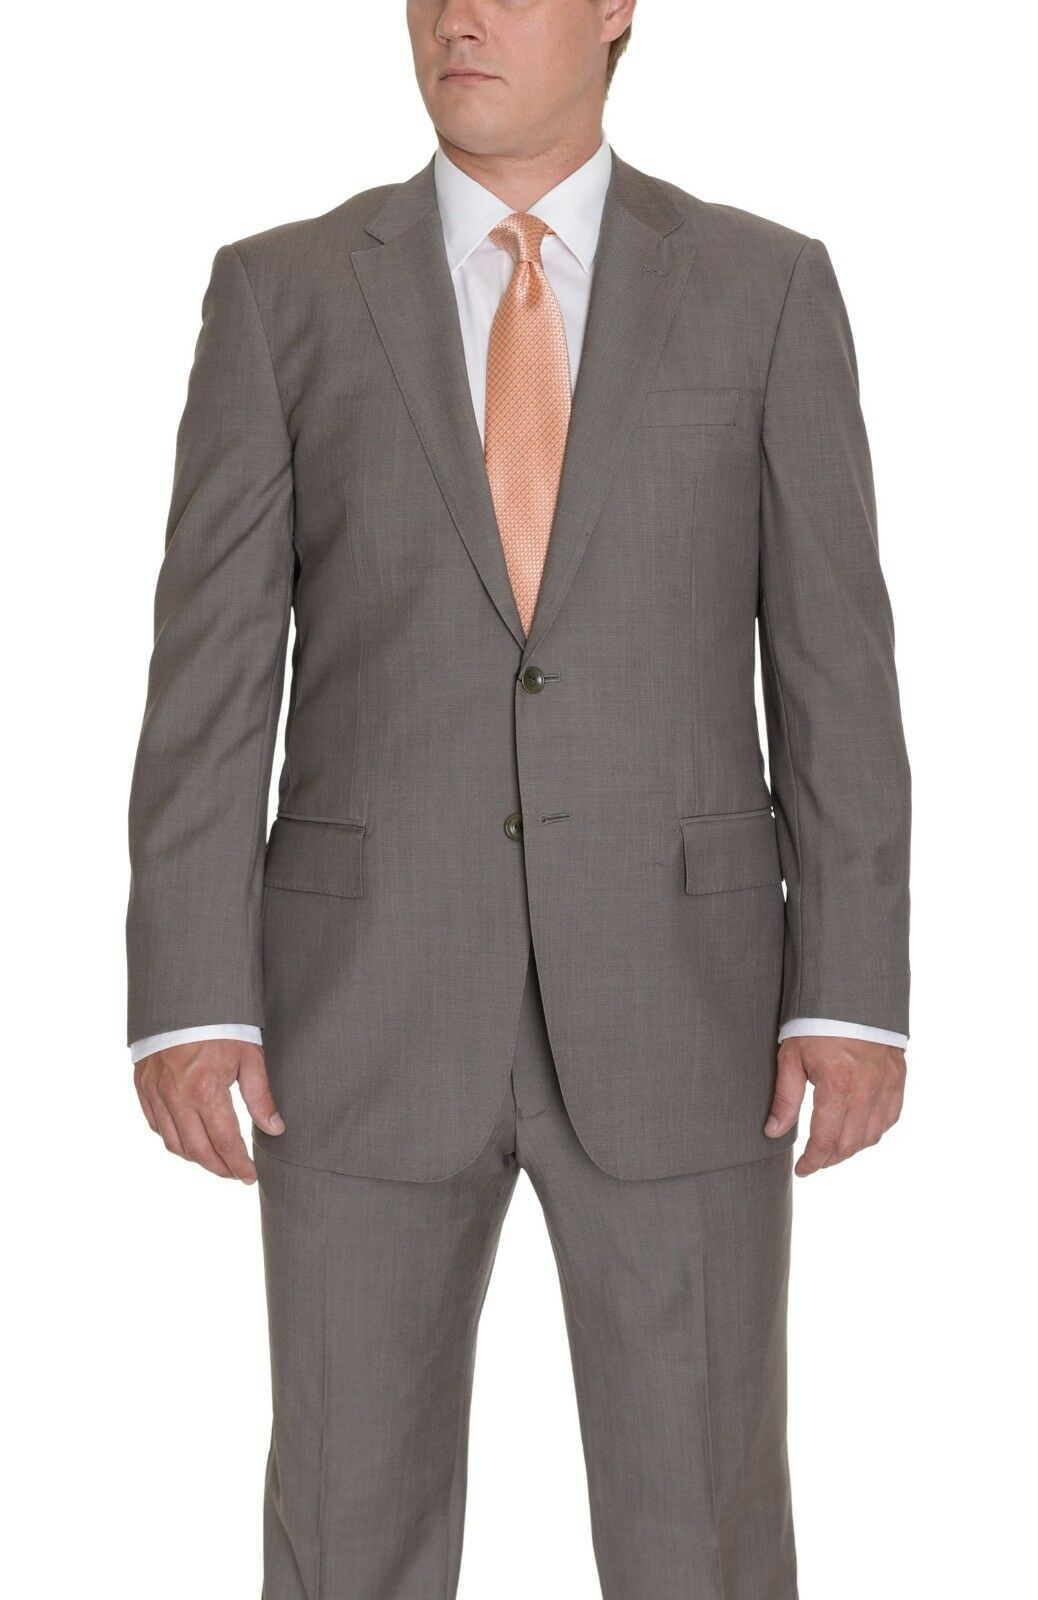 999 Enzo Solid Braun Taupe Two Button 100% Super 150's Wool Suit